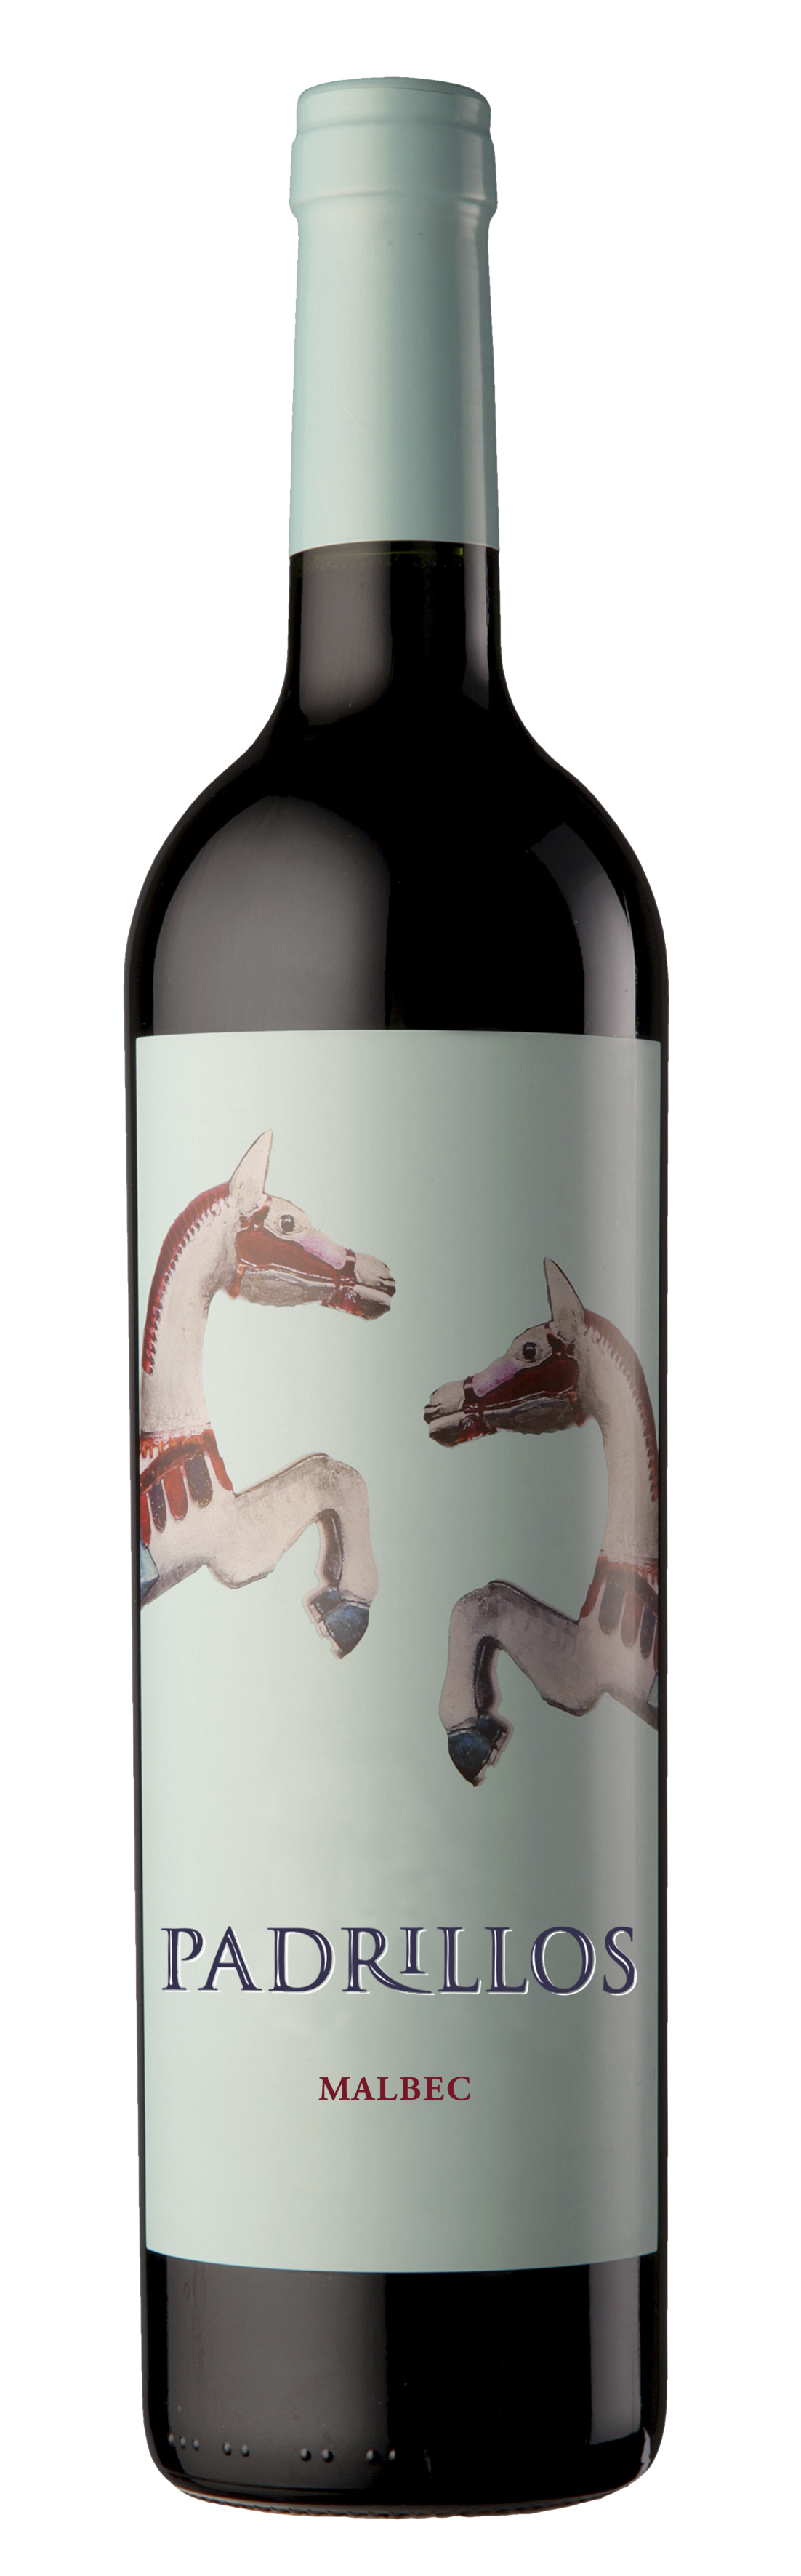 Padrillos Malbec Bottle.jpg